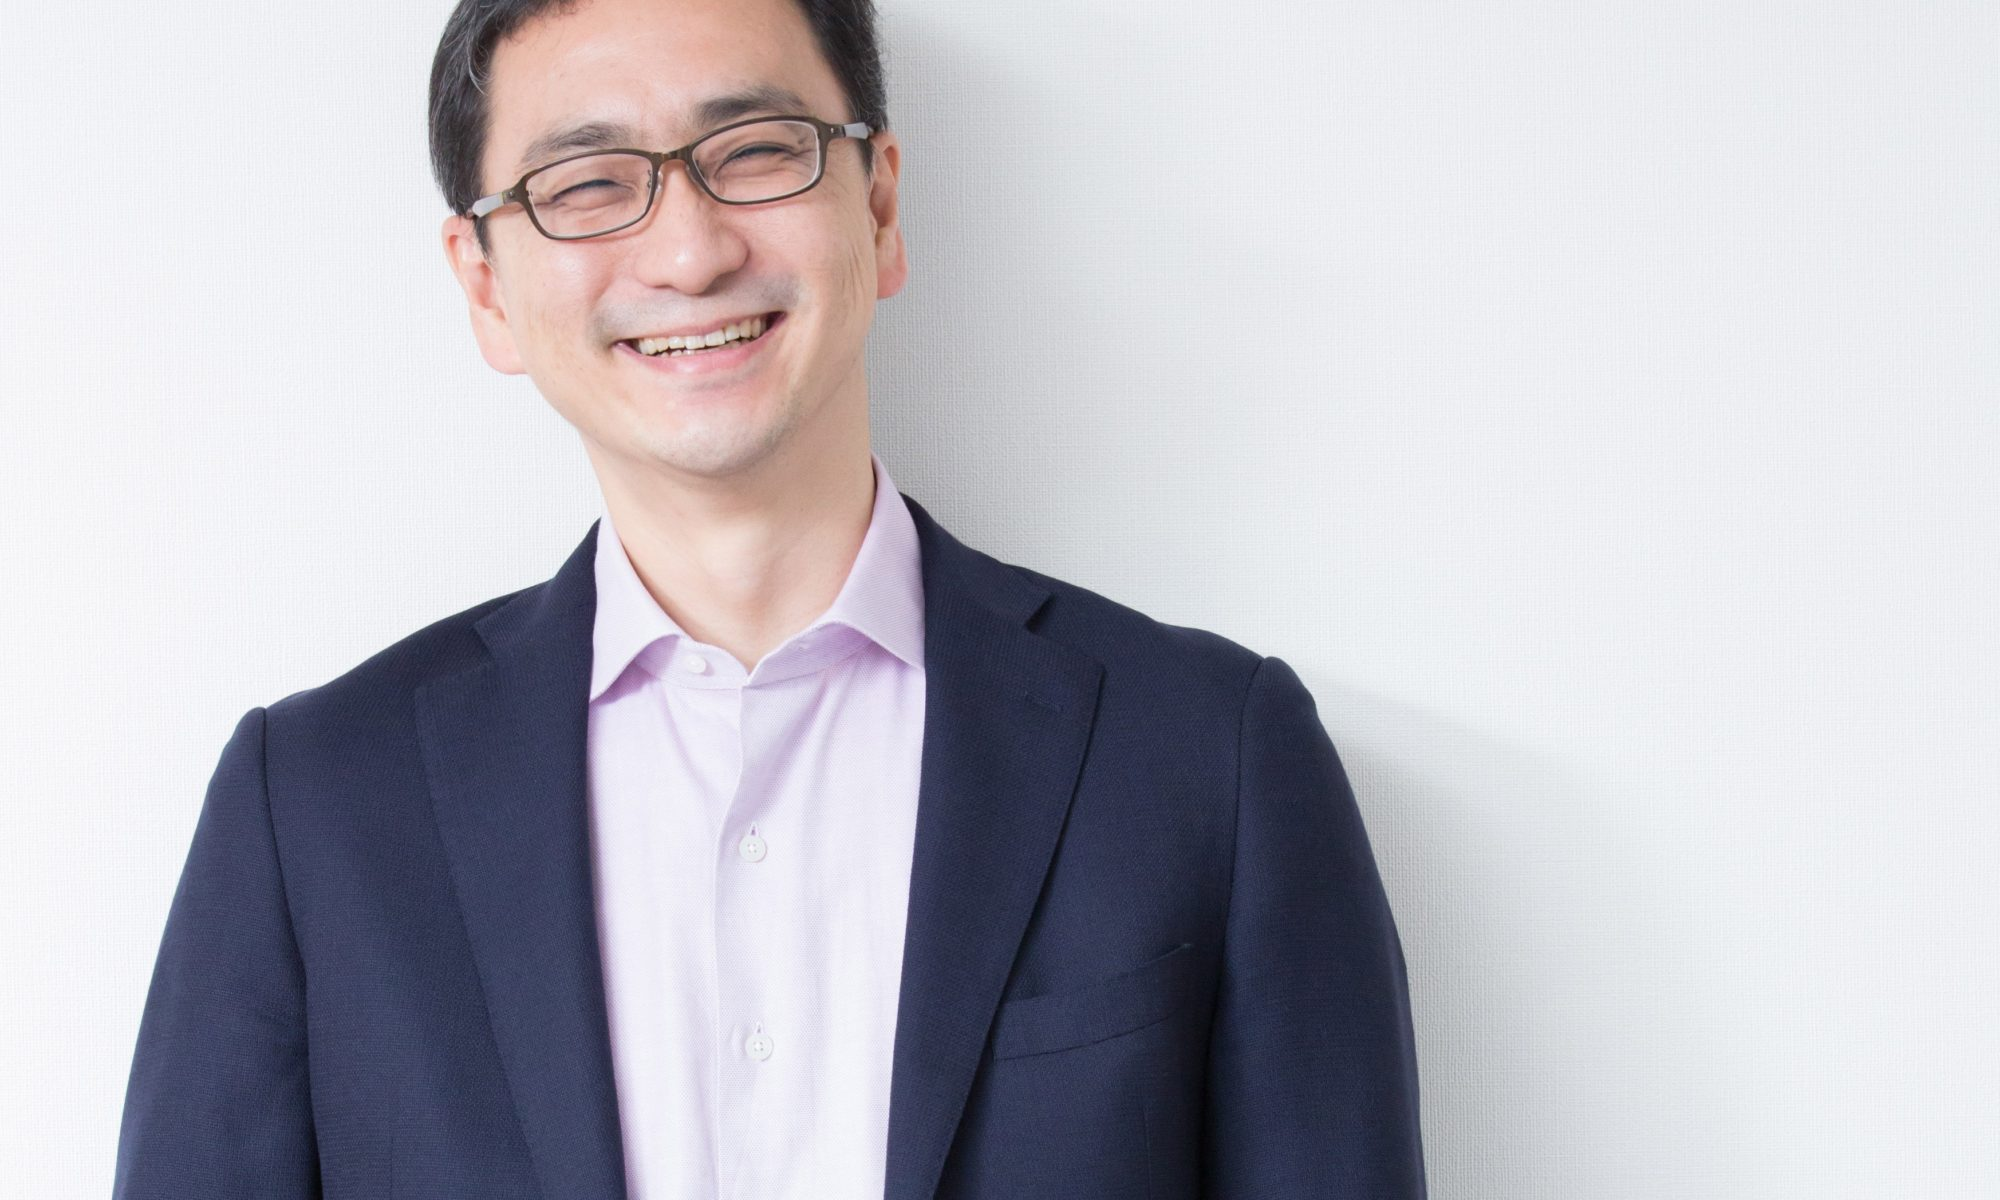 GSG Japan contacts - Masataka Uo, Founder and CEO of Japan Fundraising Association